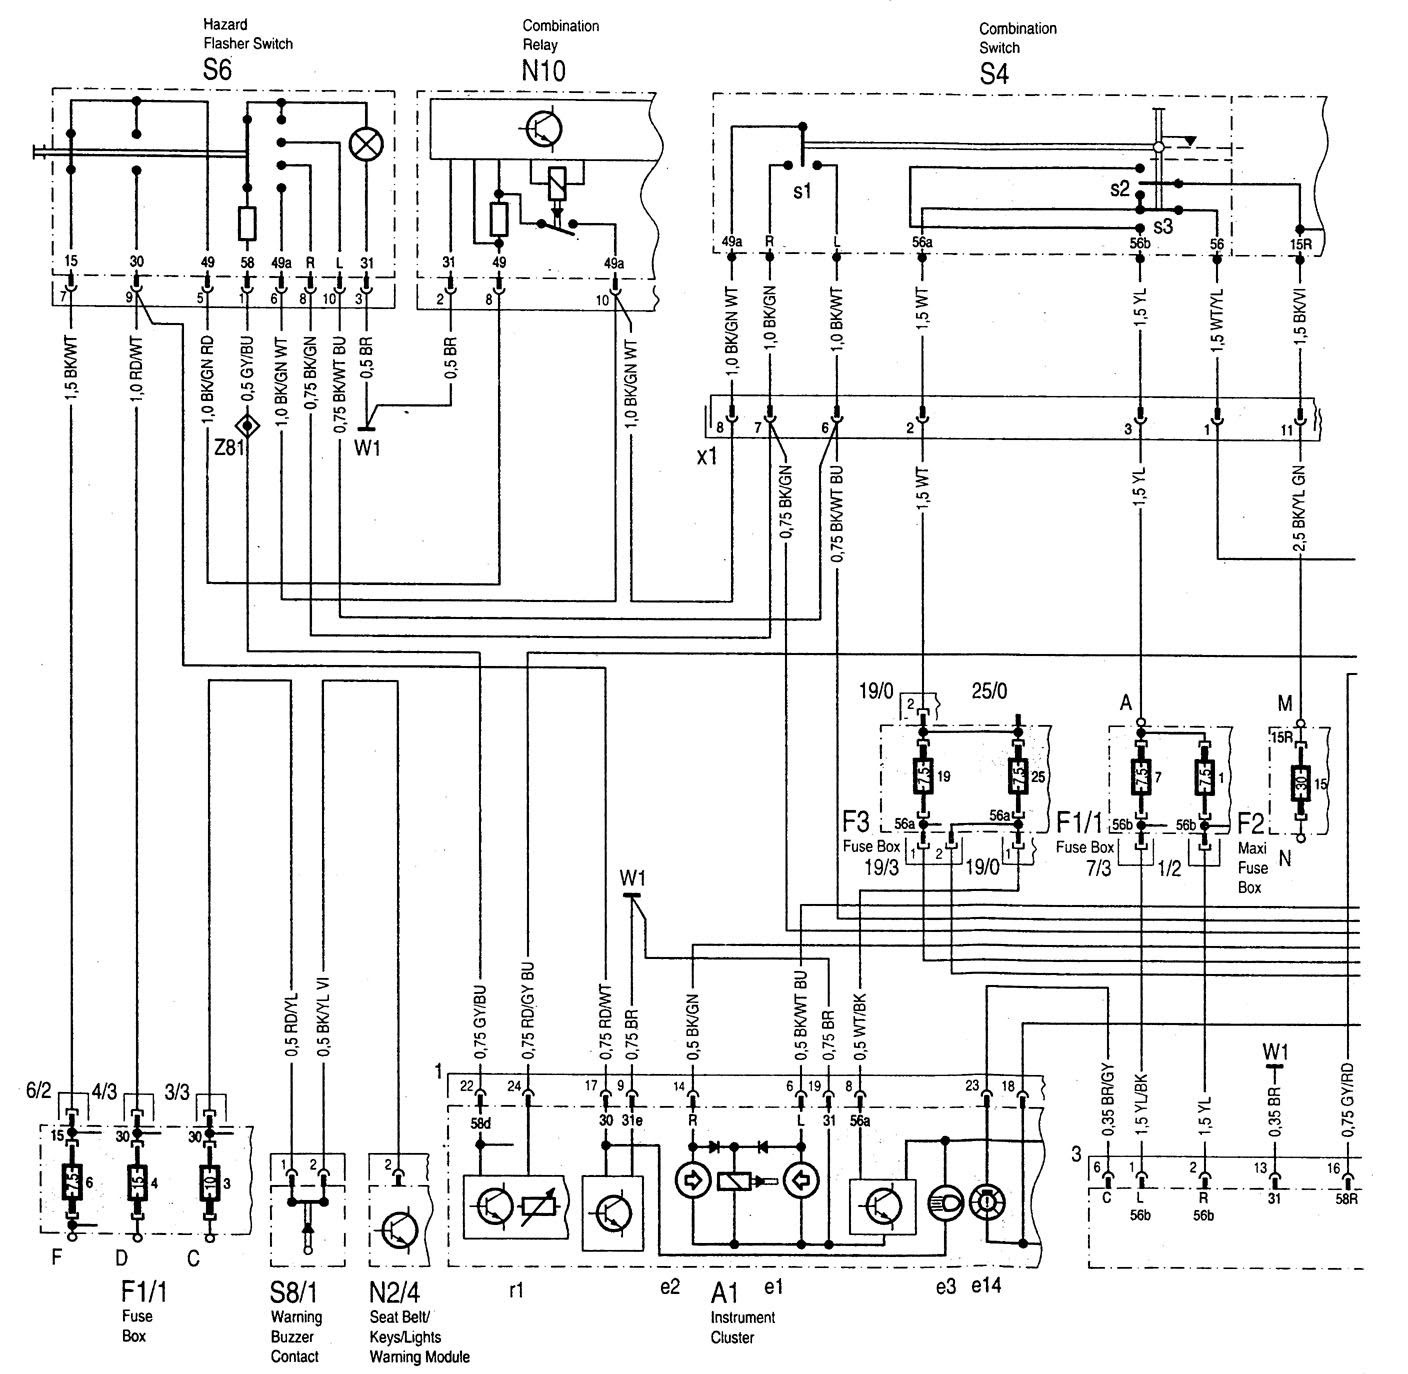 1995 Mercedes C220 Engine Diagram Wiring Diagram Starter Starter Pasticceriagele It